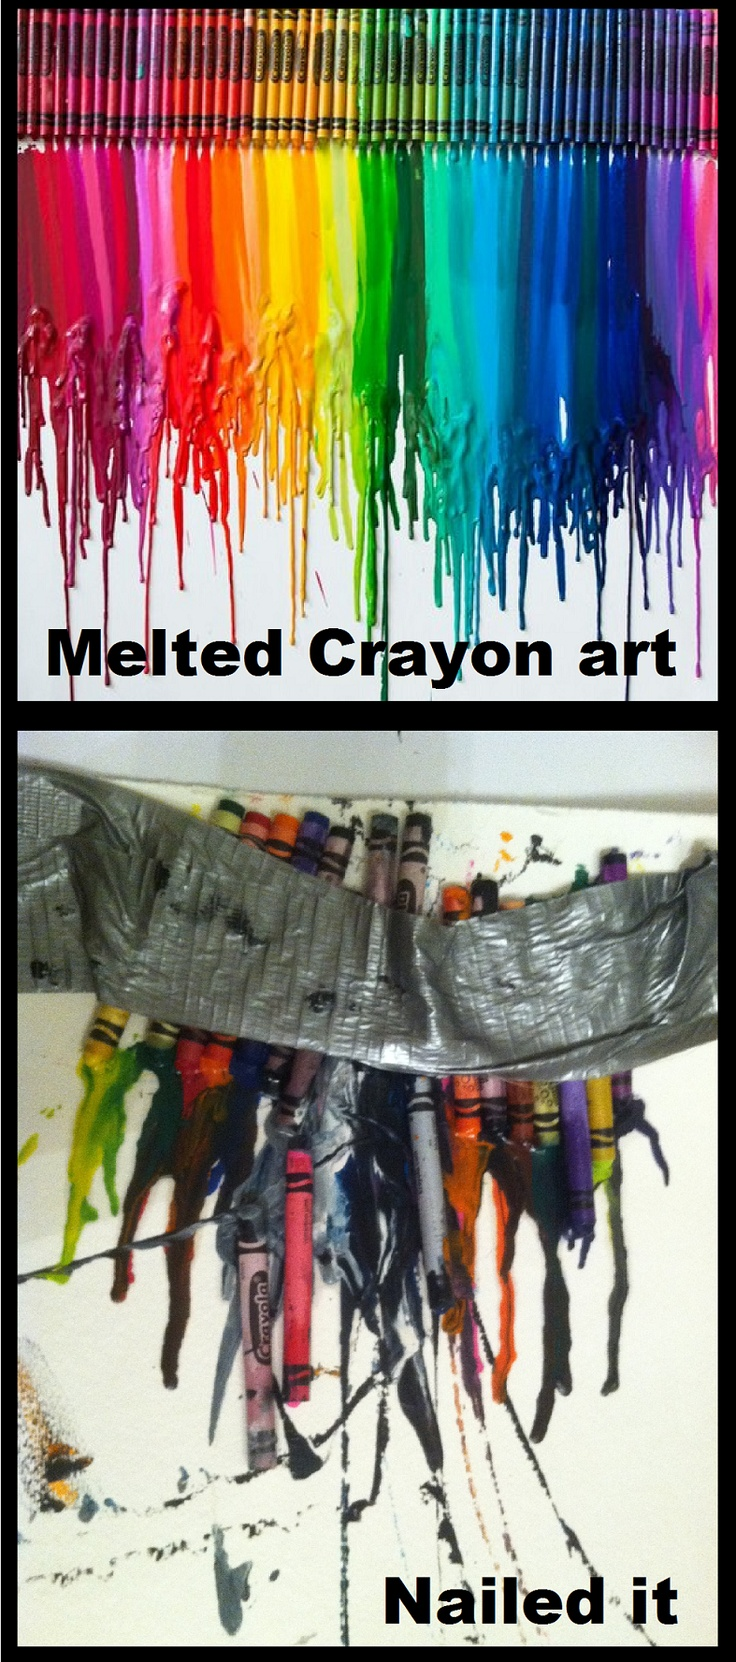 hahahahha so funny!: Duct Tape, Melted Crayons Art, Nails It, I Tried, Nailedit, Diy Projects, Pinterest Fails, Crayon Art, Crafts